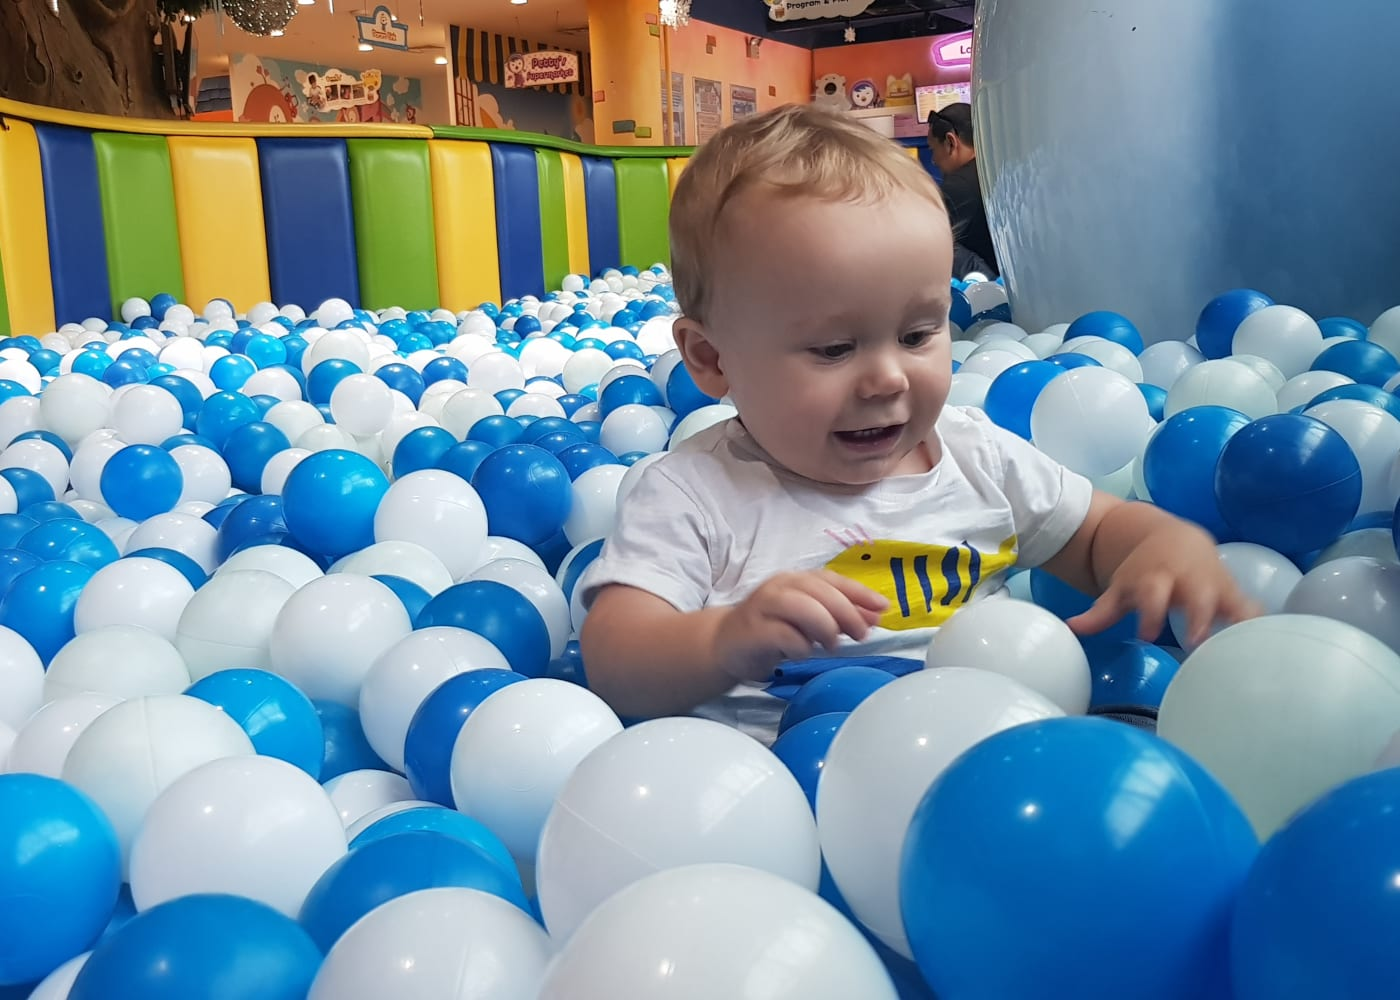 Soft play for babies: Pororo Park